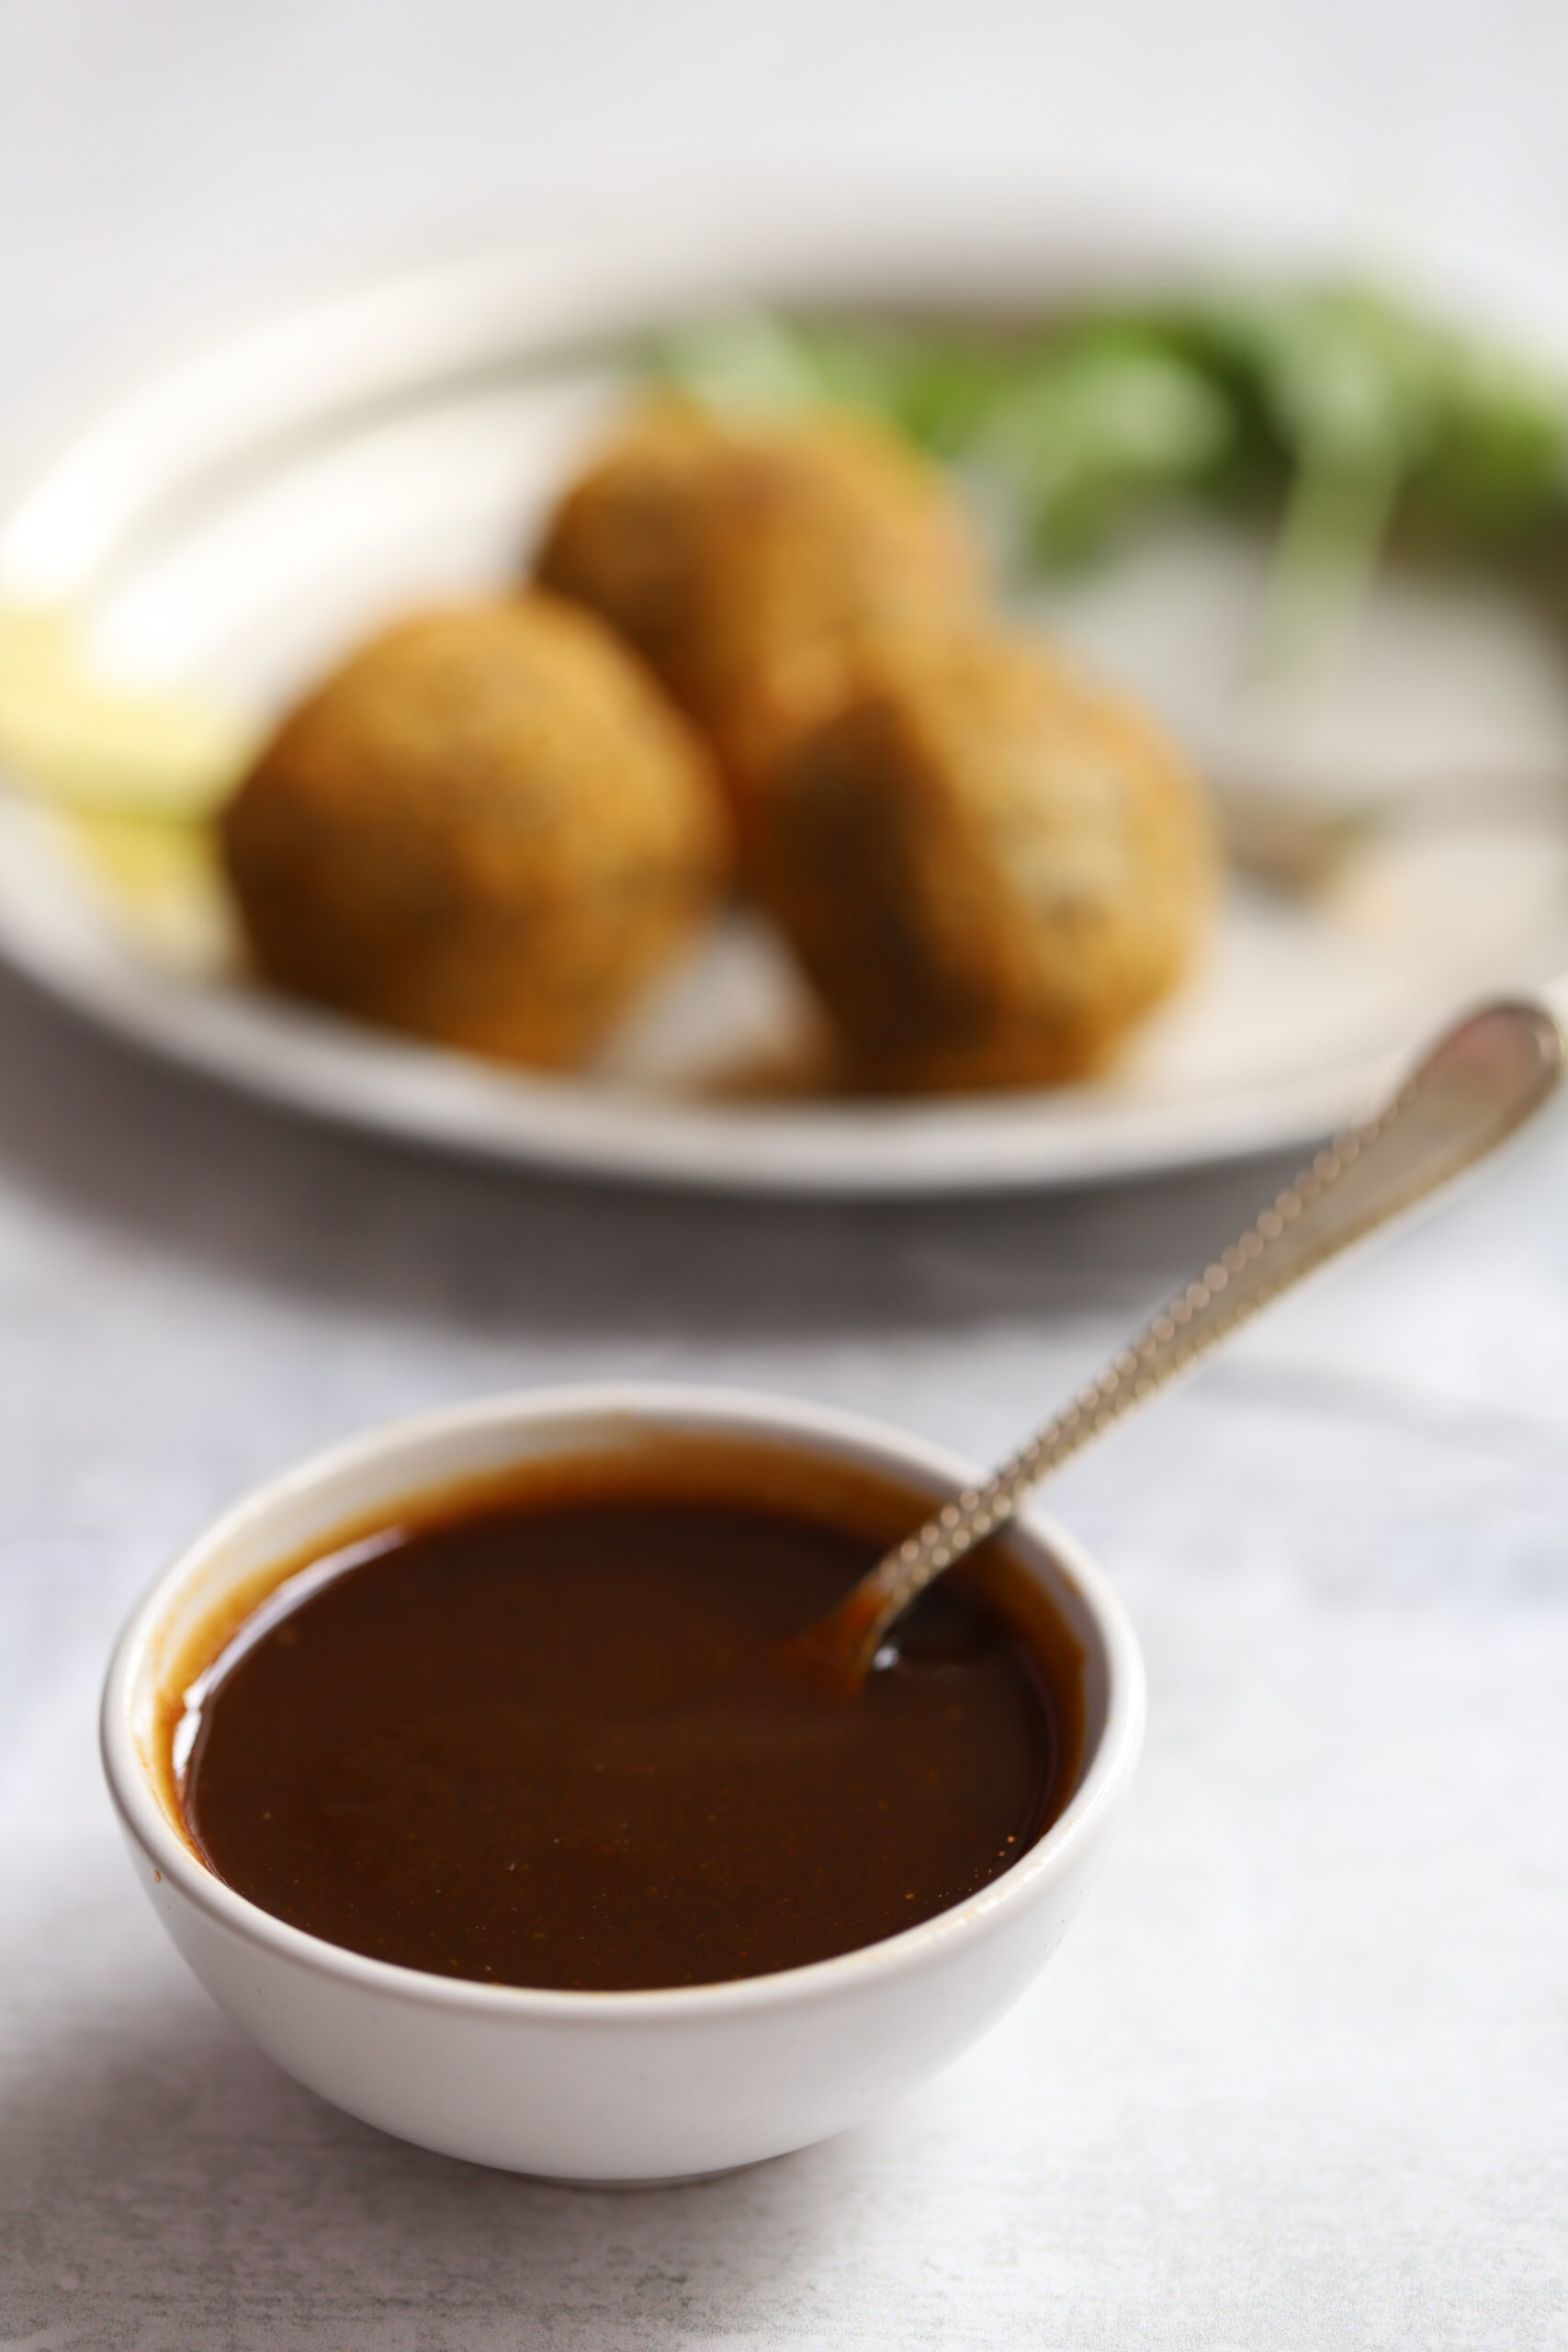 a small bowl of tamarind sauce with serving spoon